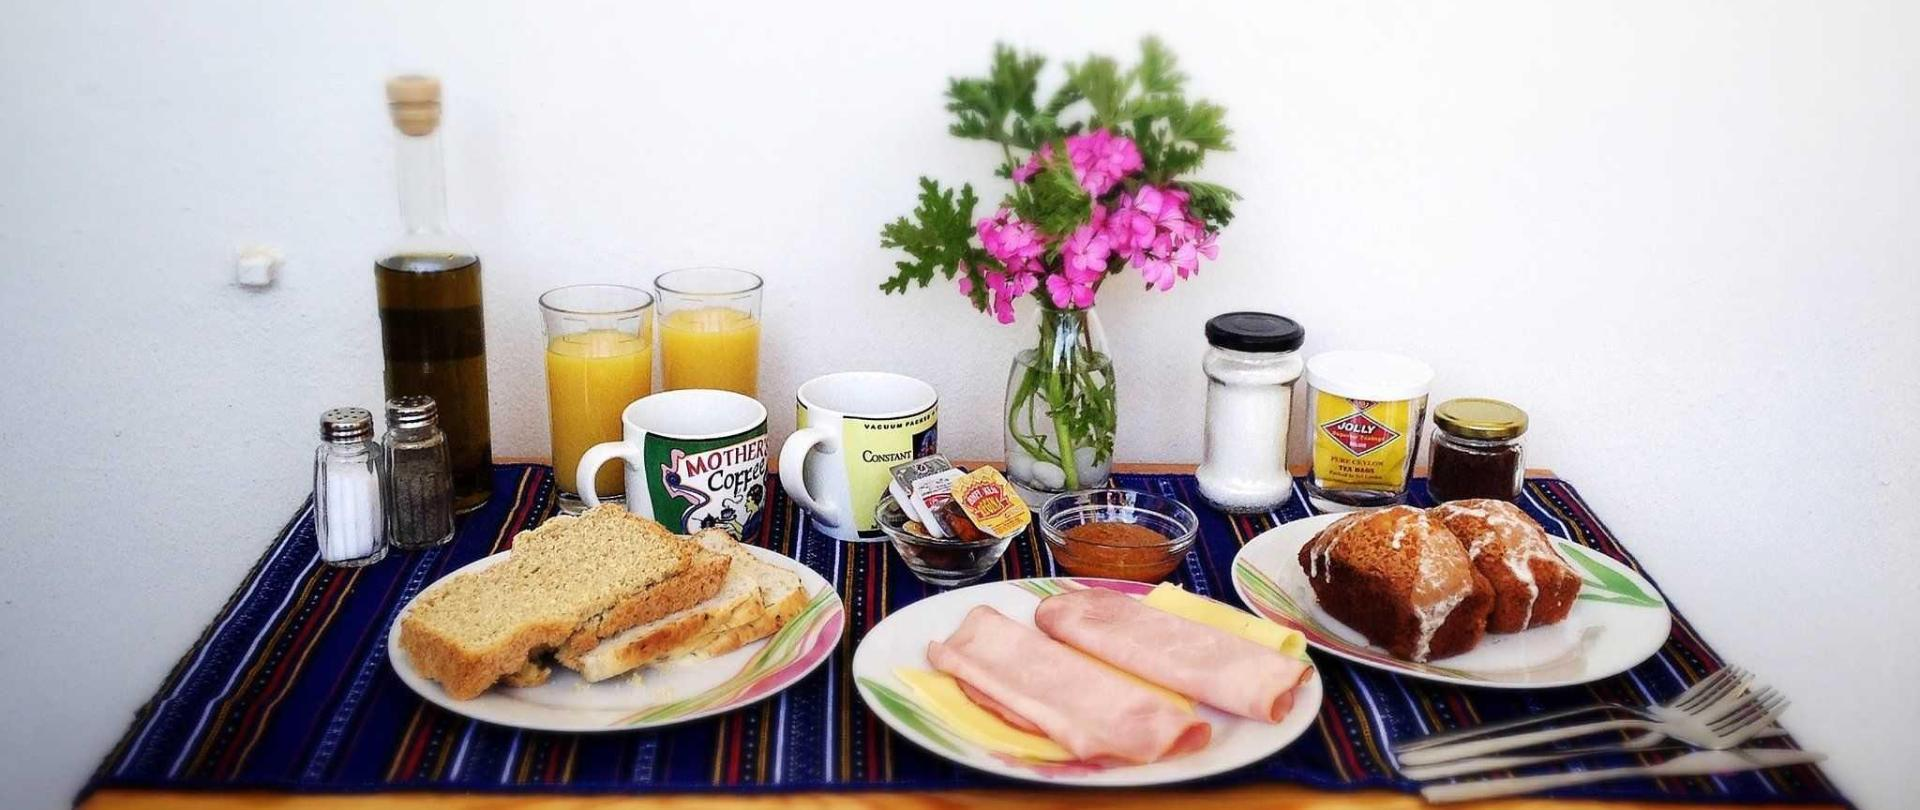 continental-breakfast-platter.JPG